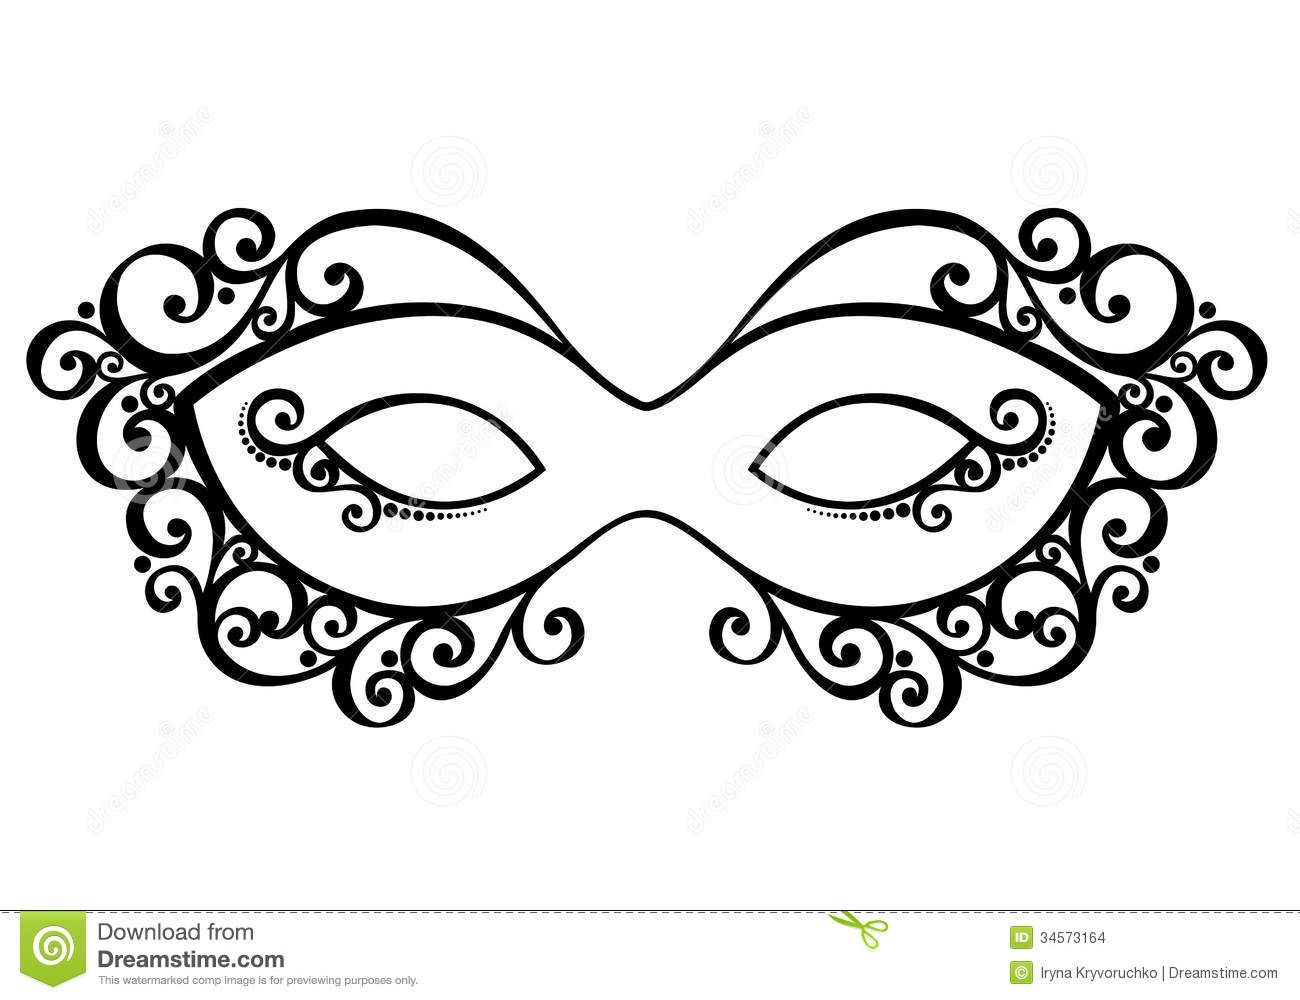 Masquerade Mask - Download From Over 30 Million High Quality Stock - Free Printable Masquerade Masks